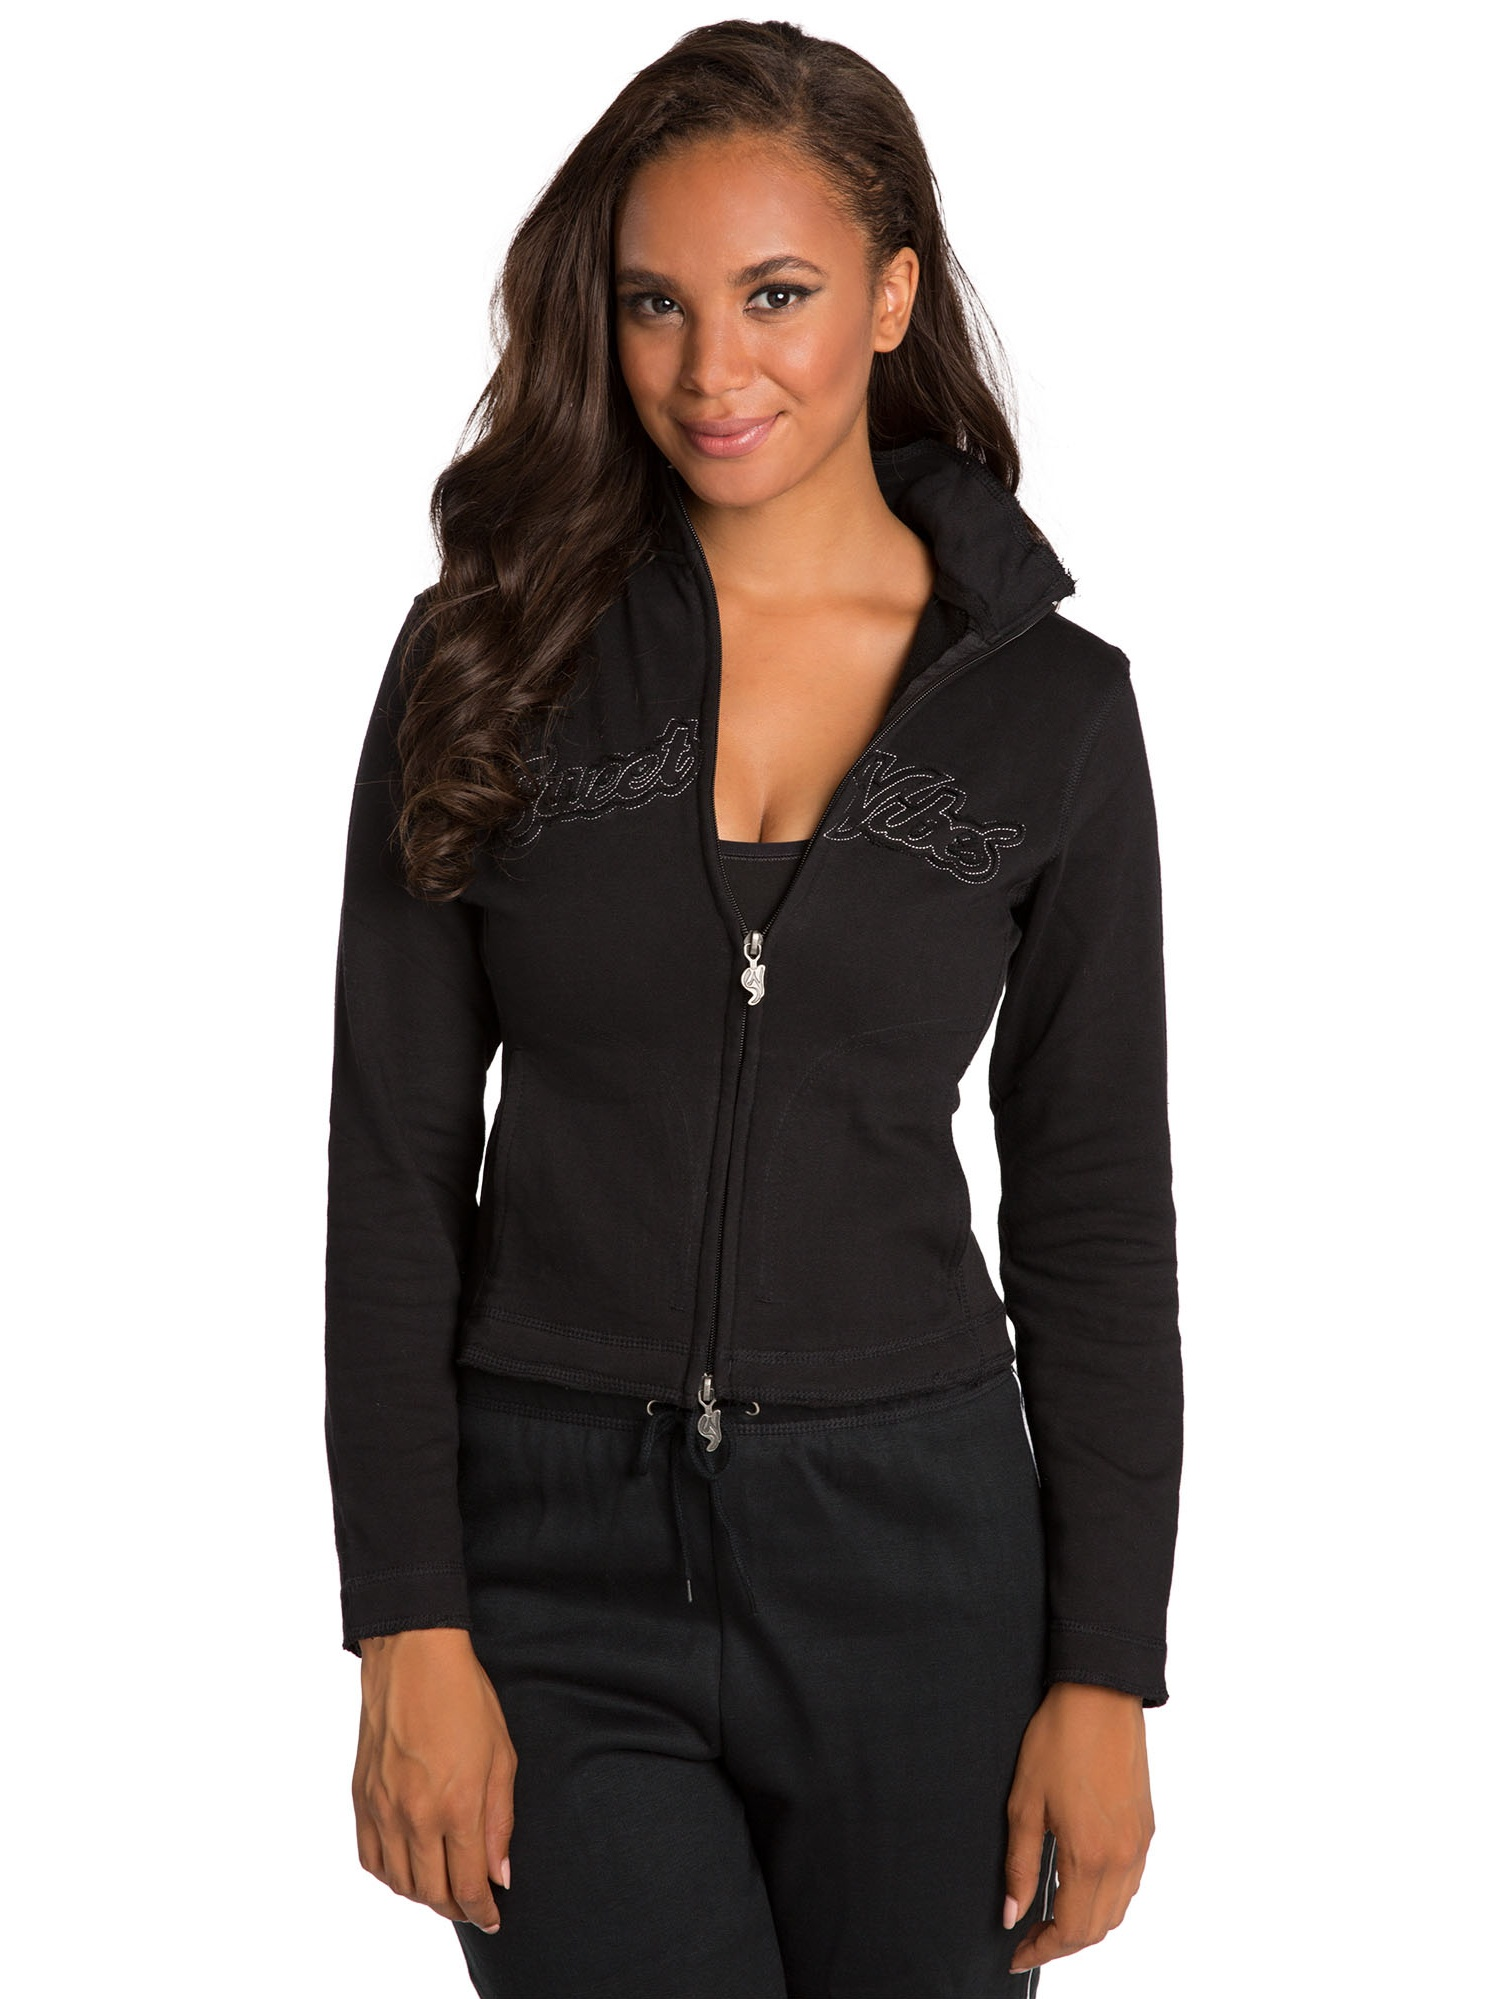 Sweet Vibes Junior Womens Track Jackets French Terry Zip Up Embroidered Raw Edge